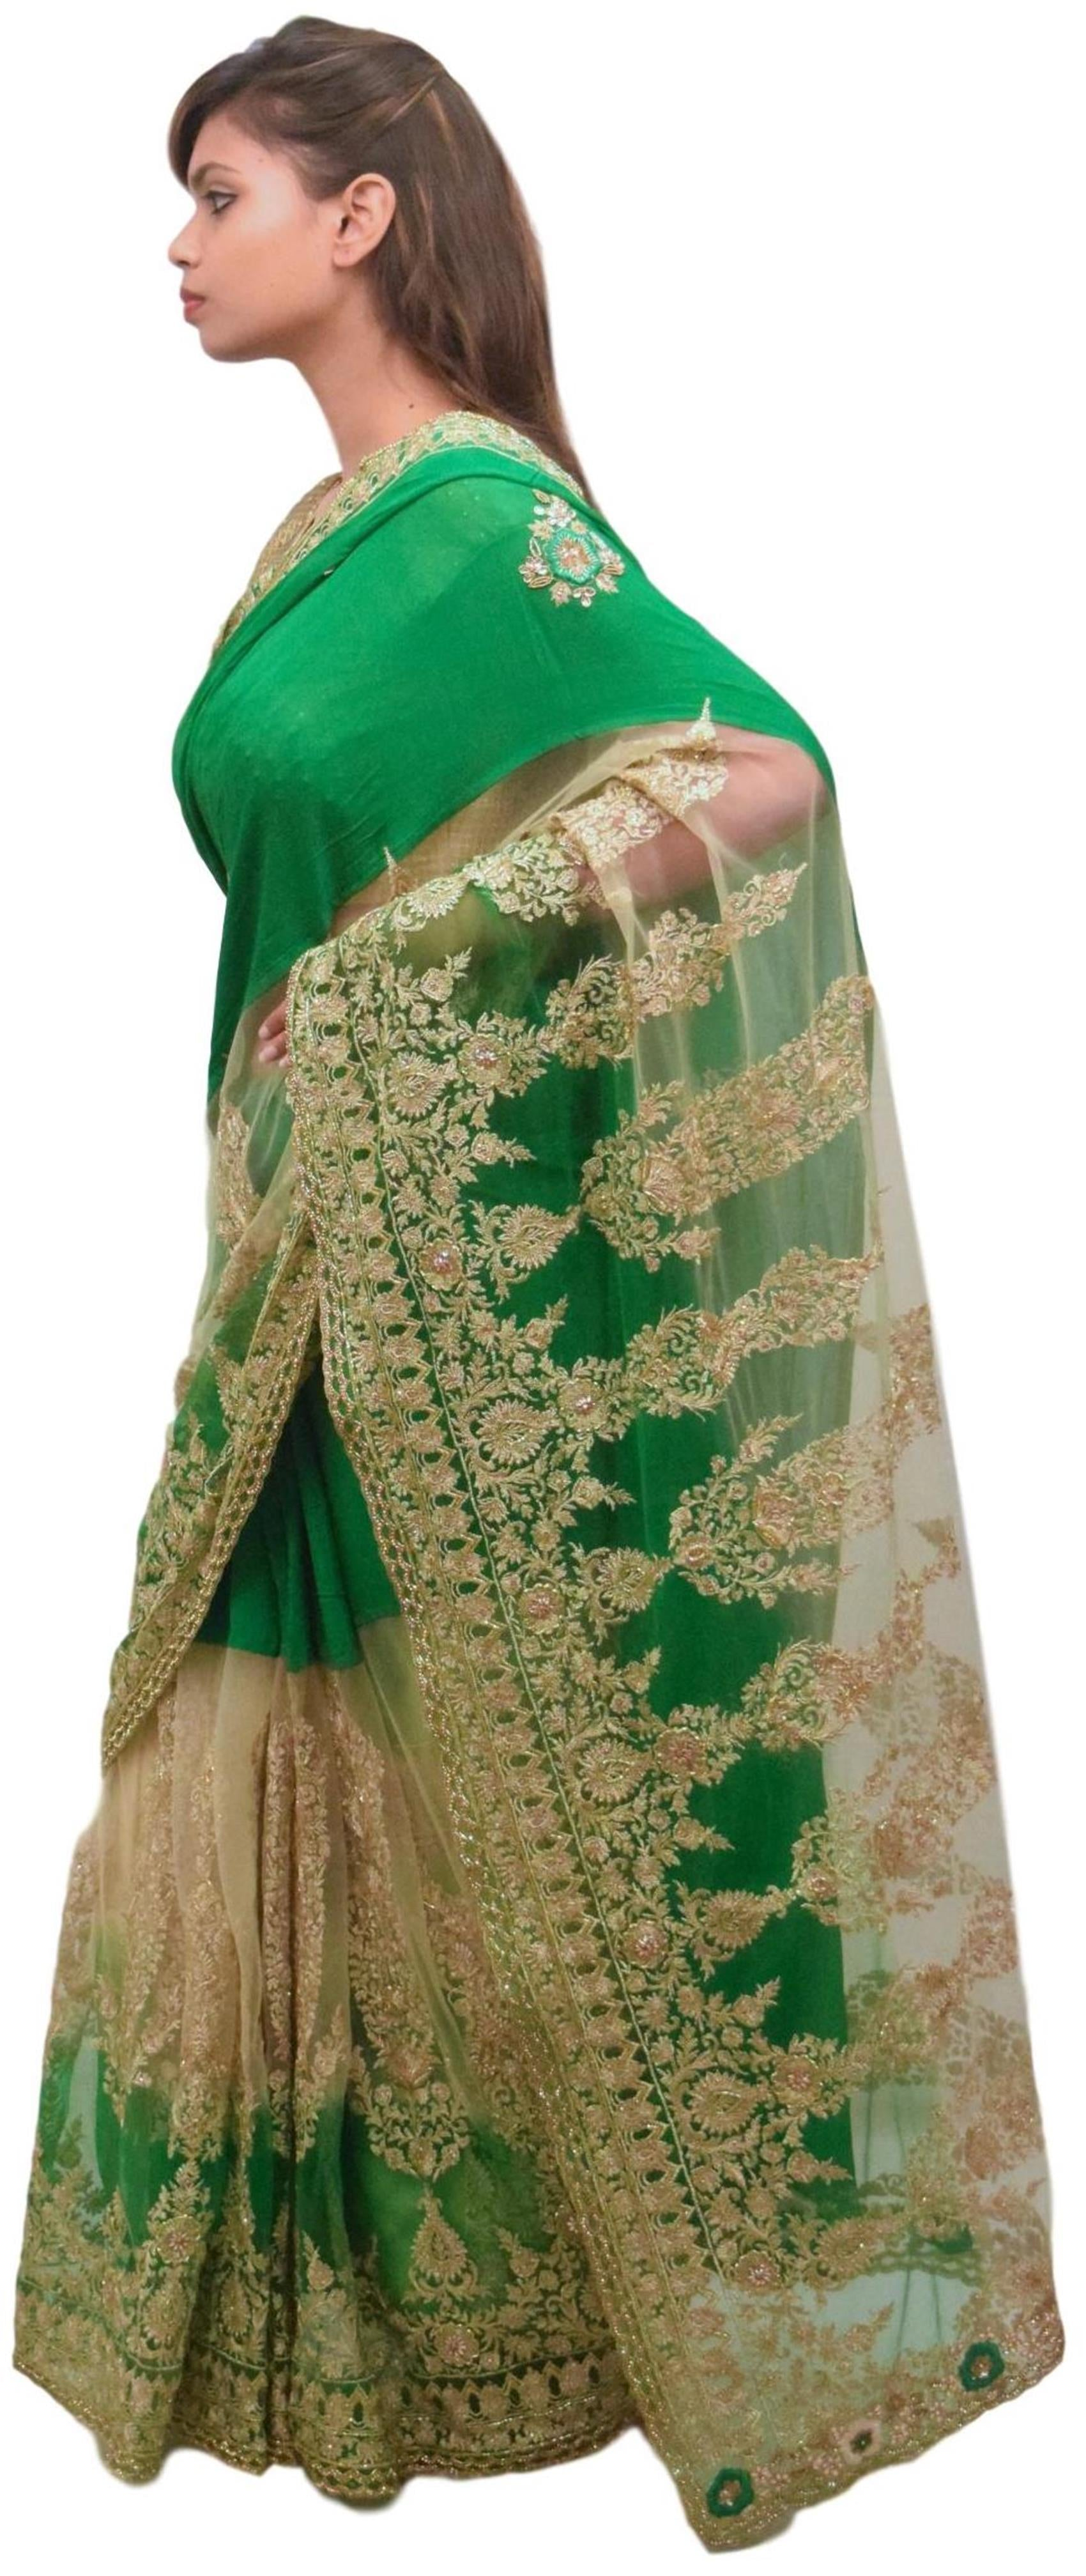 Green & Beige Designer PartyWear Bridal Georgette (Viscos) & Net Zari Thread Cutdana Sequence Stone Beads Hand Embroidery Work Wedding Saree Sari